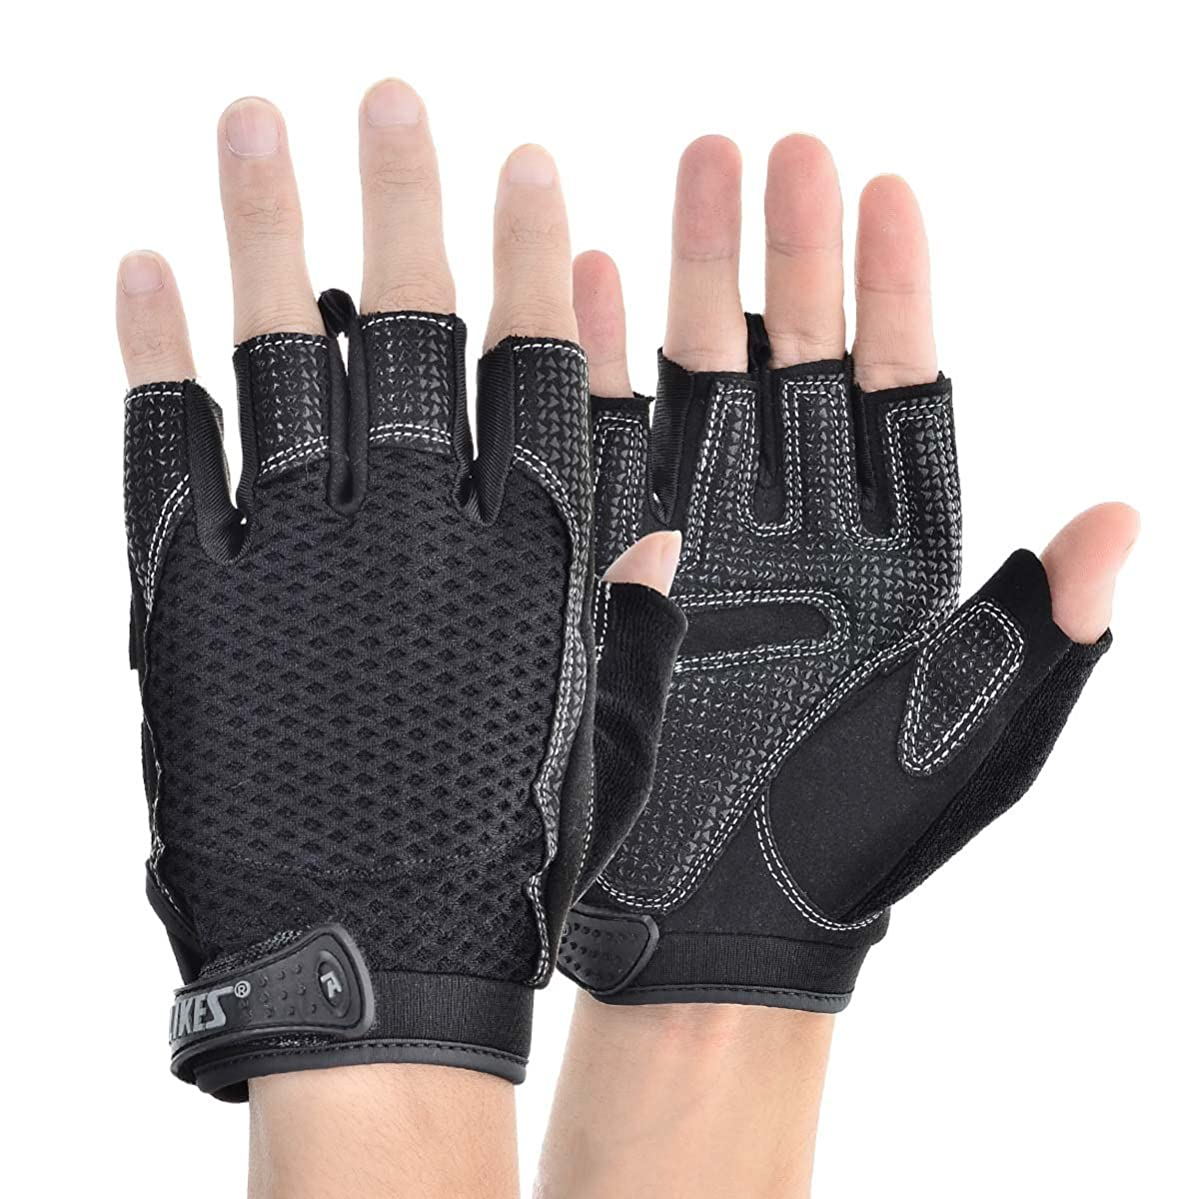 KAMO Ultralight Anti-slip Breathable Gloves for Gymnastics,Kayaking,Paddling,Sailing,Weight Lifting,Training,Fitness£?Bodybuilding and Outdoor Anti-slip Cycling Gloves Men & Women(Black,XL)